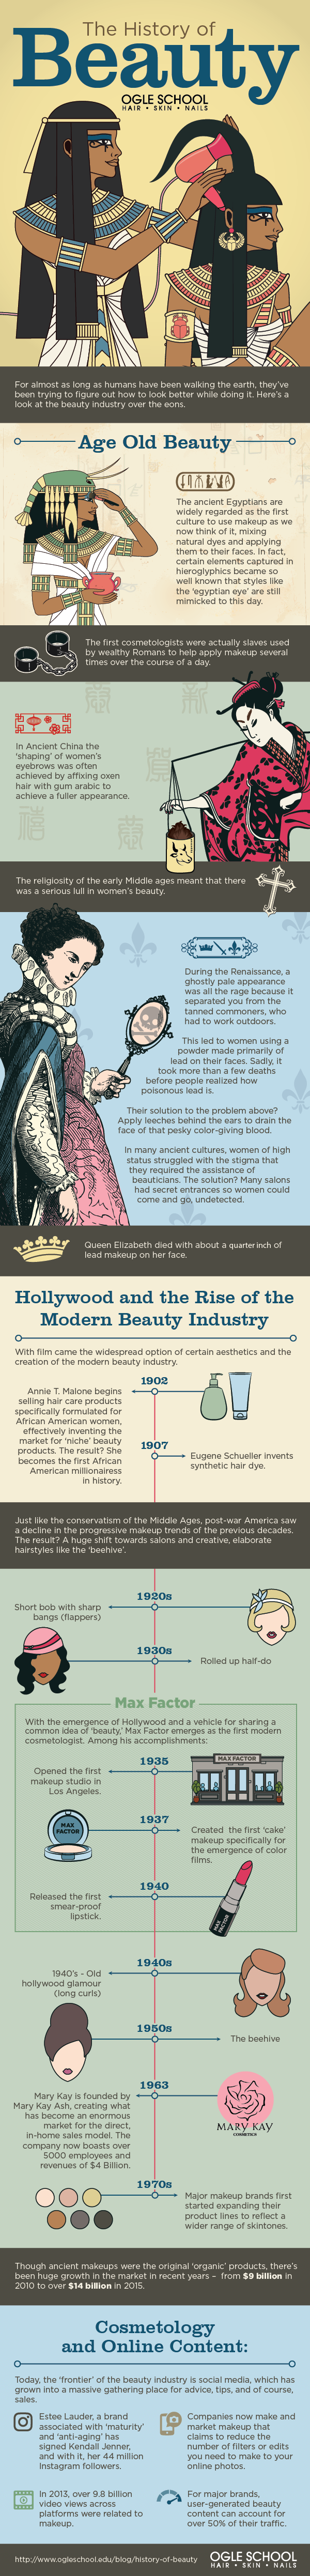 history-of-beauty